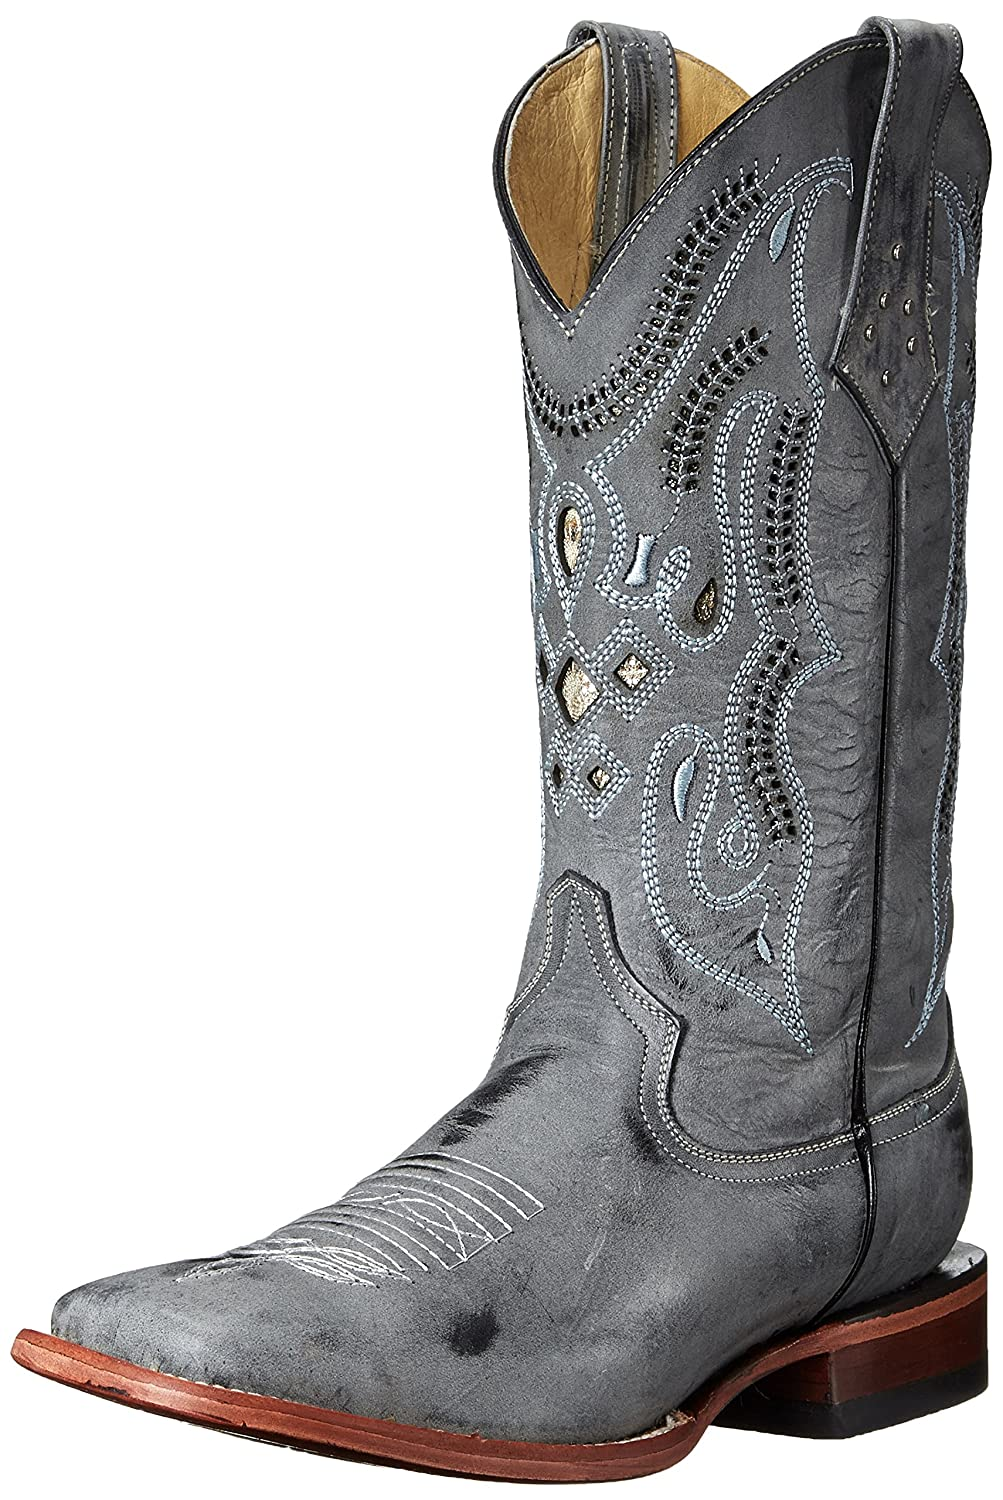 Ferrini Men's Cowhide G Western Boot, Grey, 8 D US: Buy Online at Low  Prices in India - Amazon.in